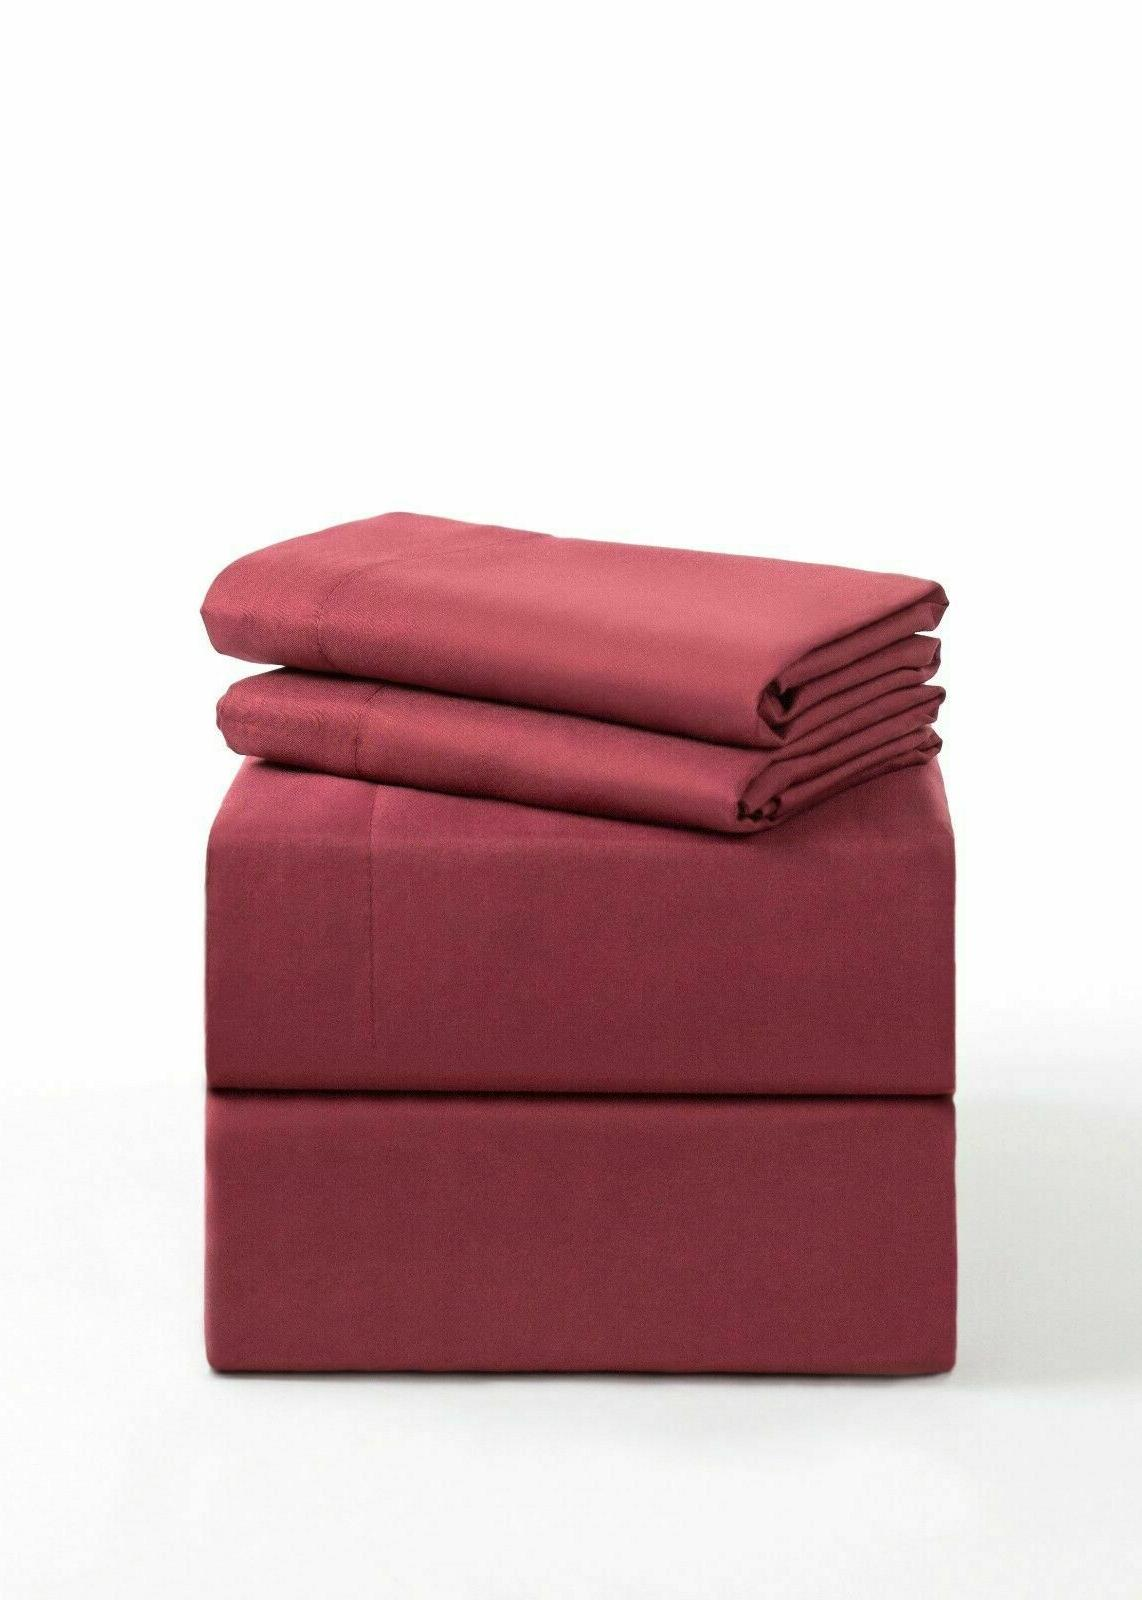 Egyptian Luxurious Series 4 Bed Sheet Sheets